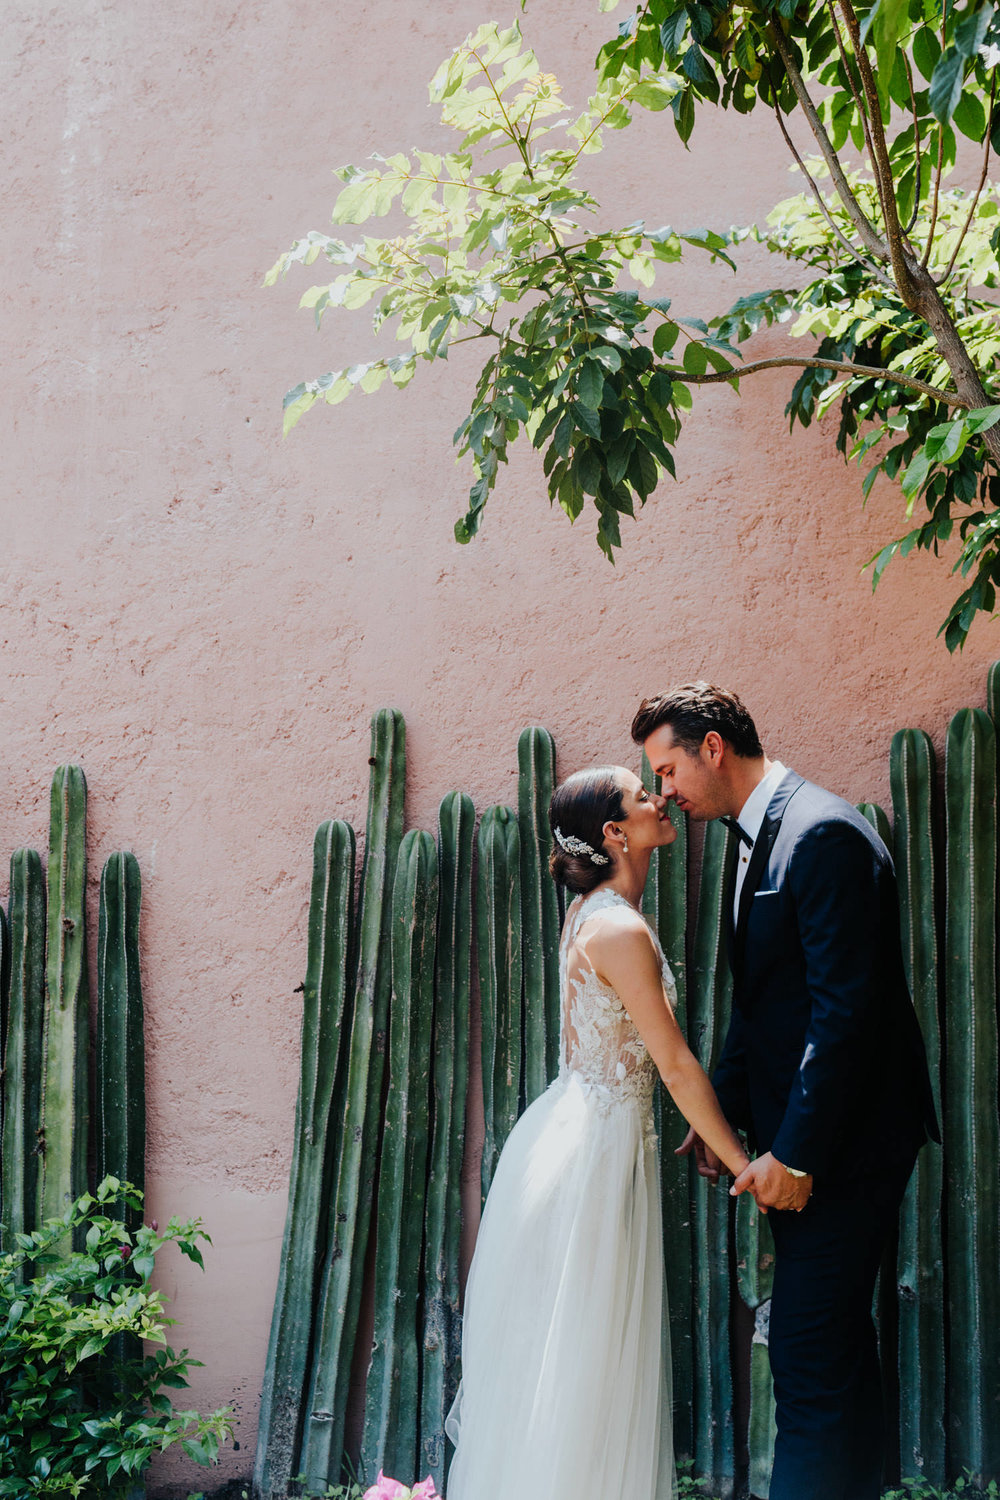 San-Miguel-de-Allende-Wedding-Photography-Parroquia-Instituto-Boda-Fotografia-Fer-Sergio-Pierce-Lifestyle-Photography0141.JPG